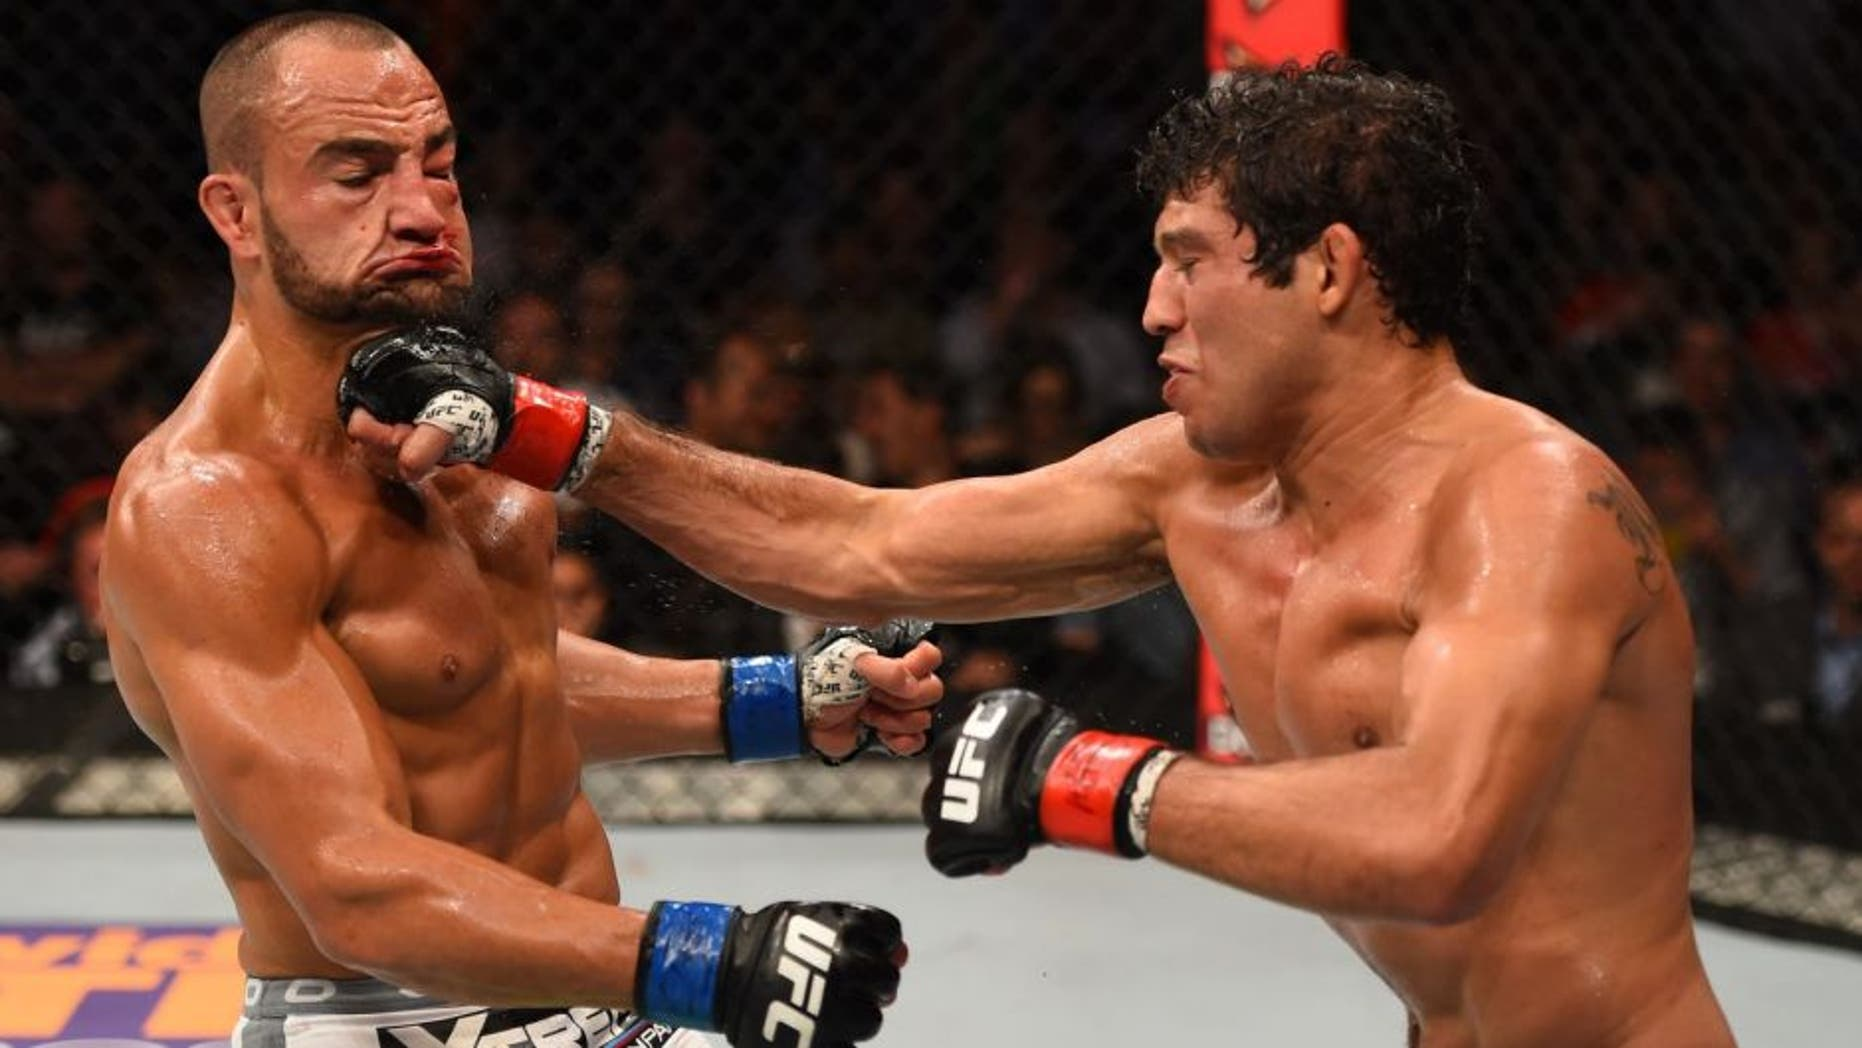 MEXICO CITY, MEXICO - JUNE 13: (R-L) Gilbert Melendez of the United States punches Eddie Alvarez of the United Statesin their lightweight bout during the UFC 188 event at the Arena Ciudad de Mexico on June 13, 2015 in Mexico City, Mexico. (Photo by Josh Hedges/Zuffa LLC/Zuffa LLC via Getty Images)